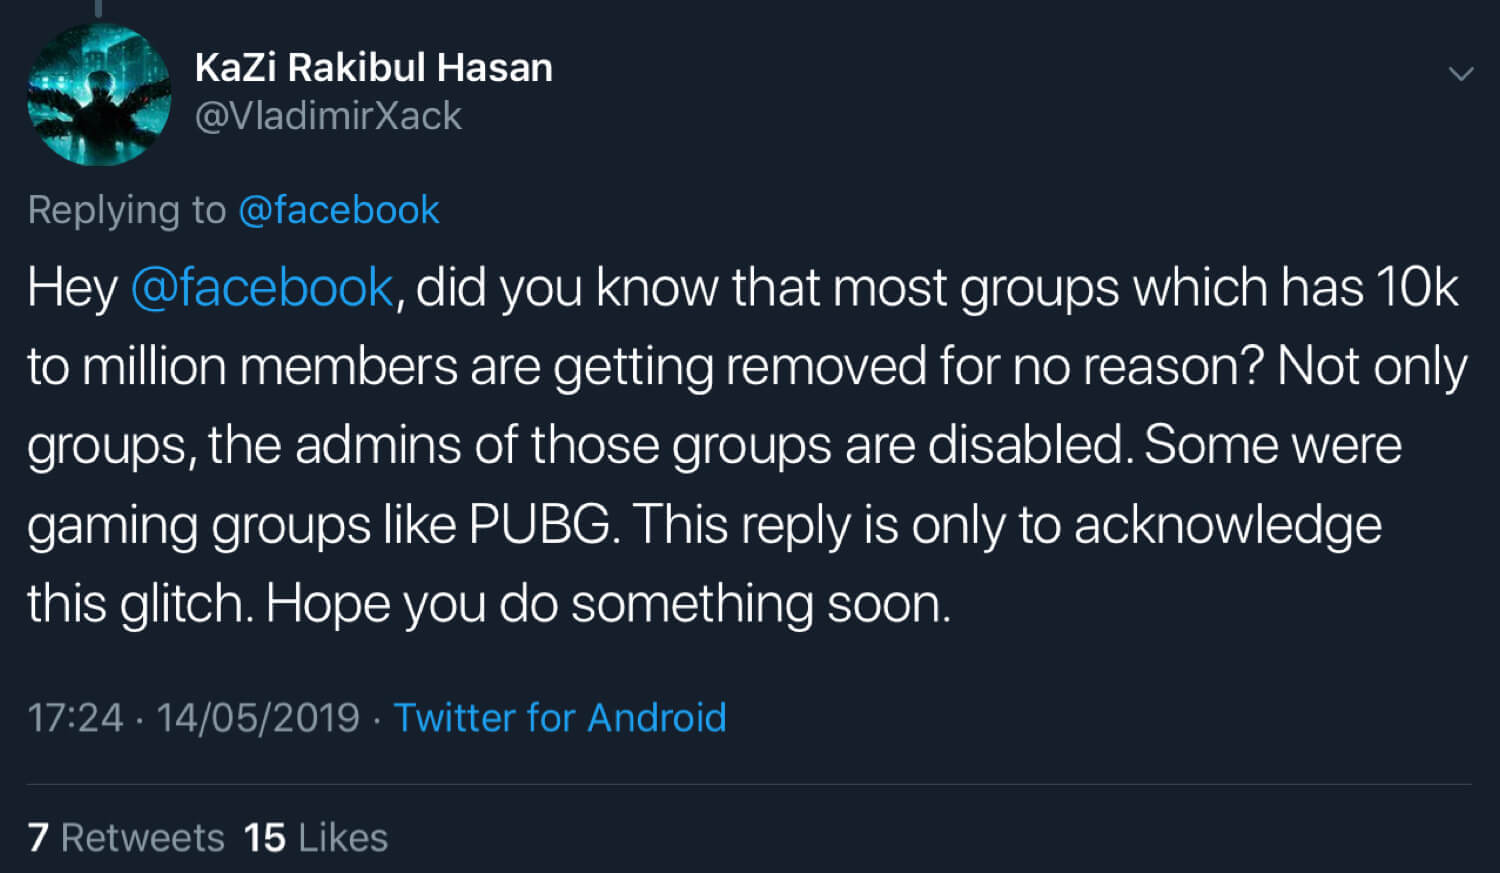 KaZi Rakibul Hasan announcing that Facebook has deleted multiple groups and disabled the Facebook accounts of group admins.